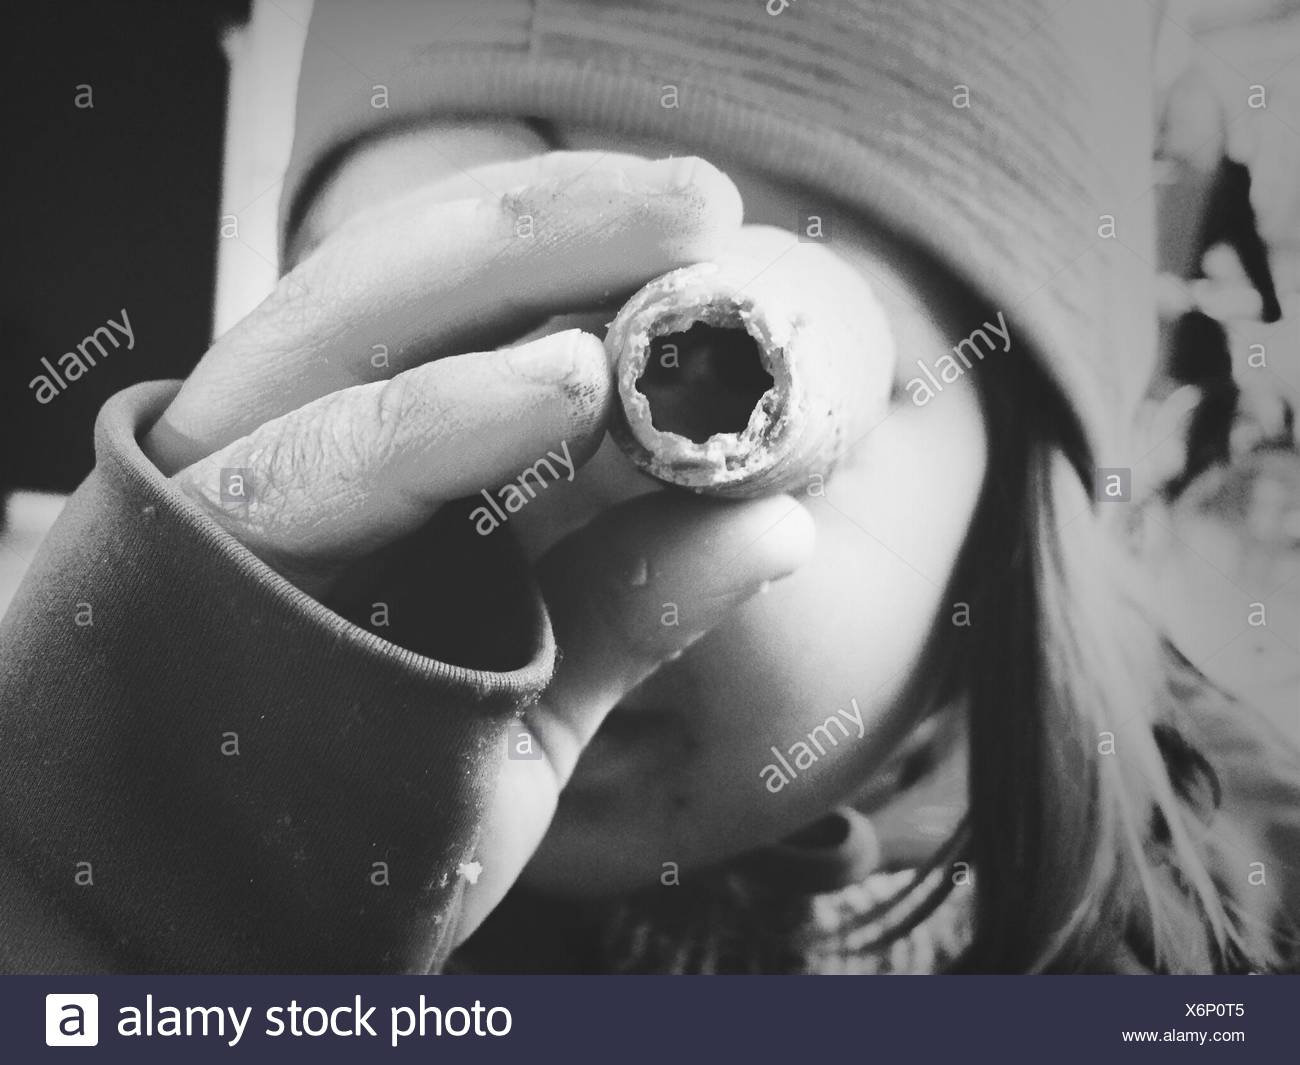 Close-Up Portrait Of Woman Looking Through An Object - Stock Image